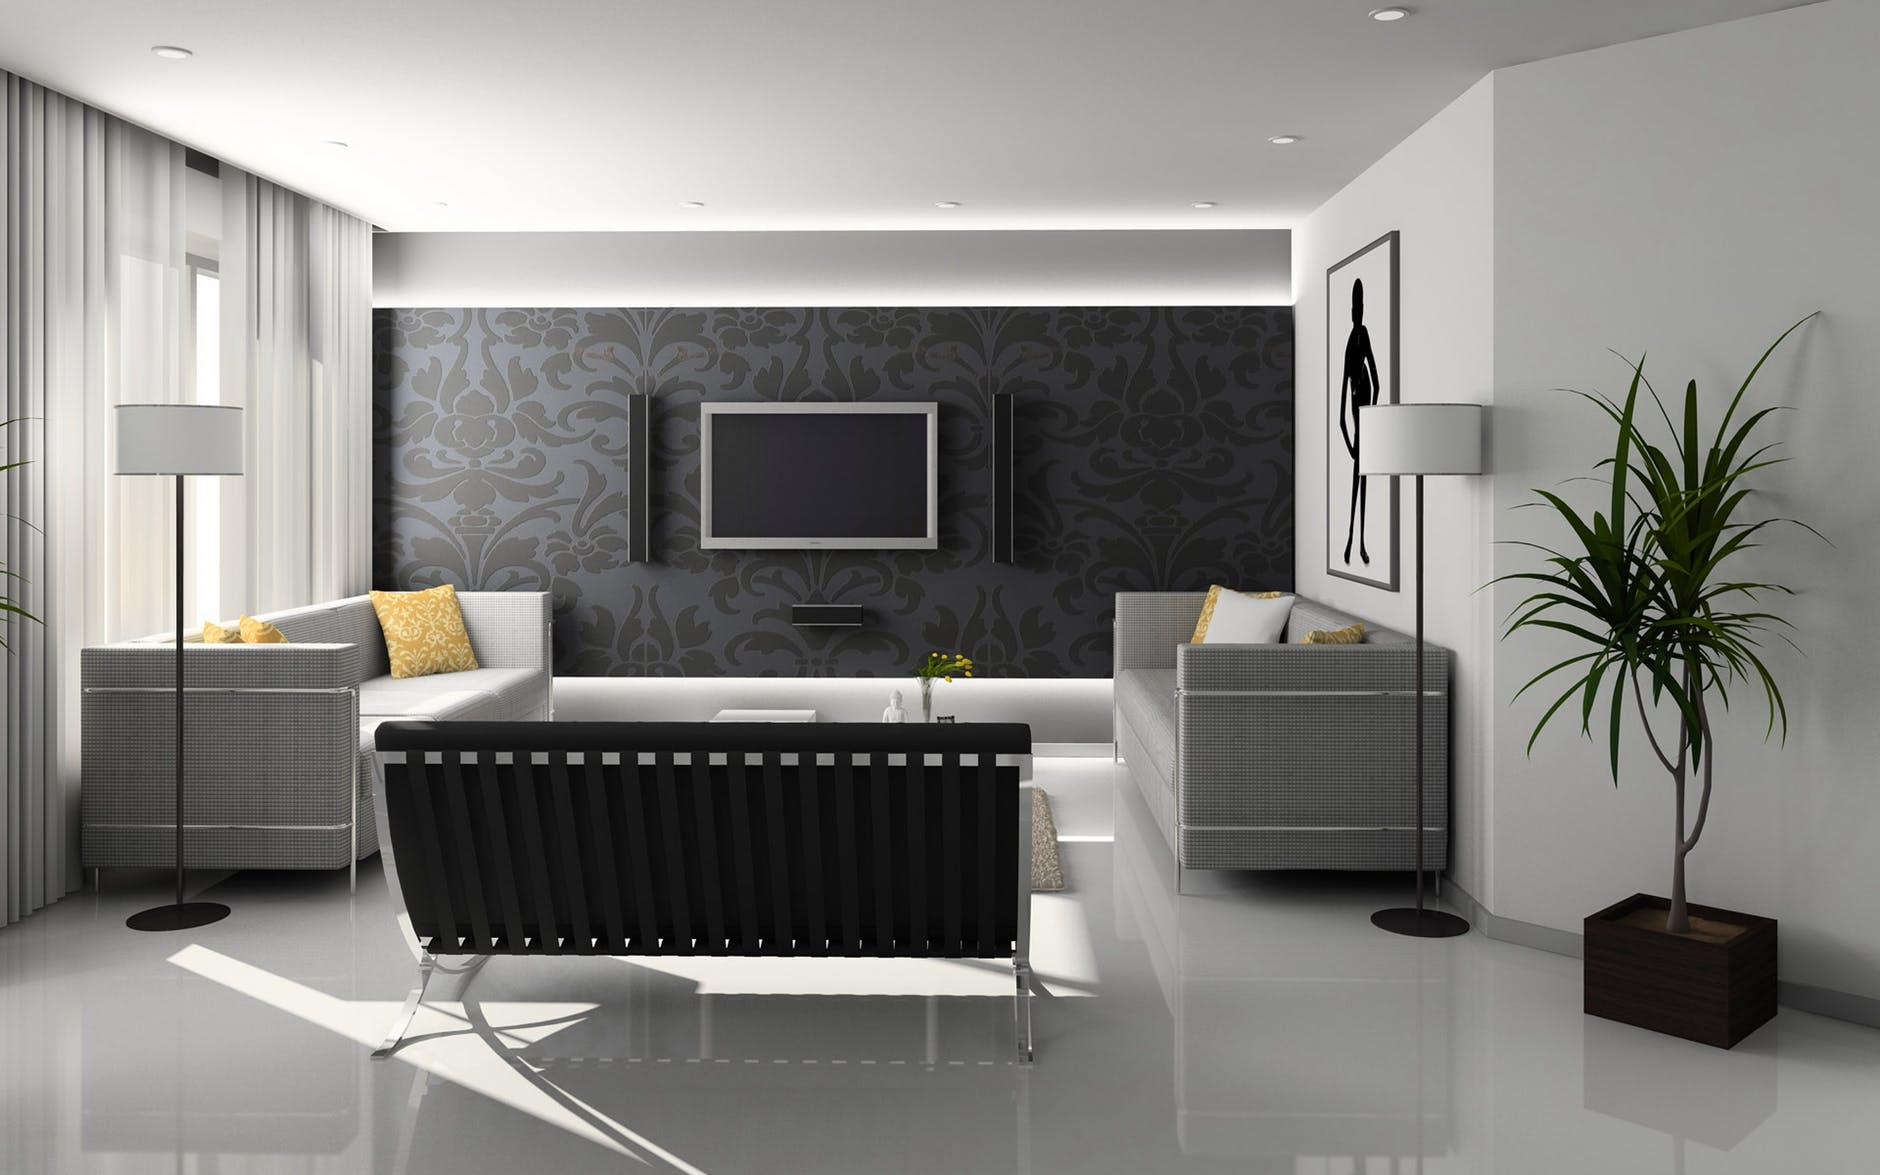 Polyaspartic Floor Coating: What Is It and Its Benefits?